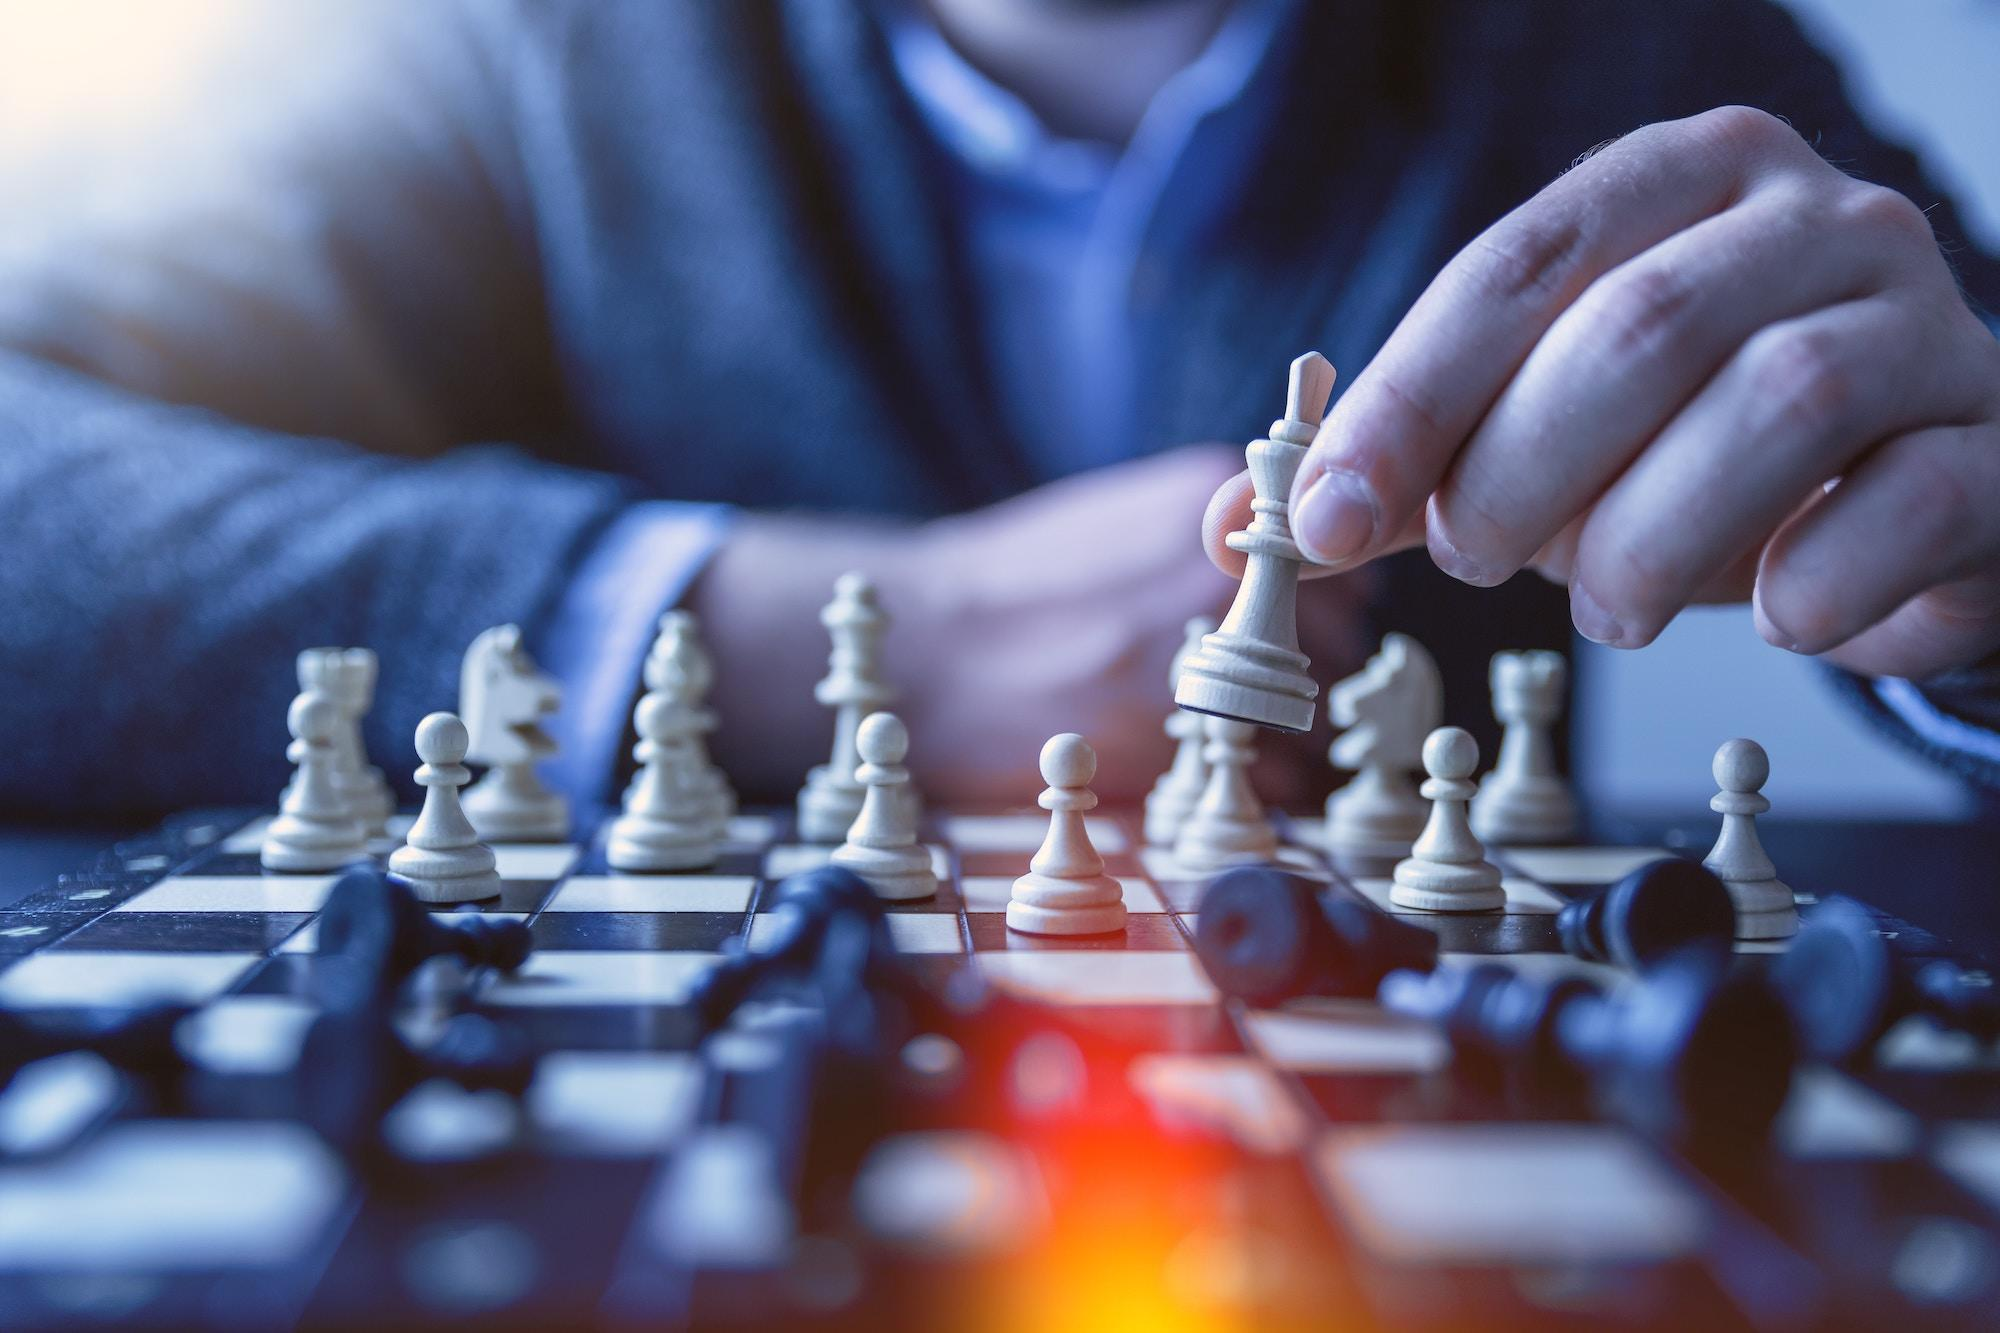 Chess move as symbol of great strategic planning and choices